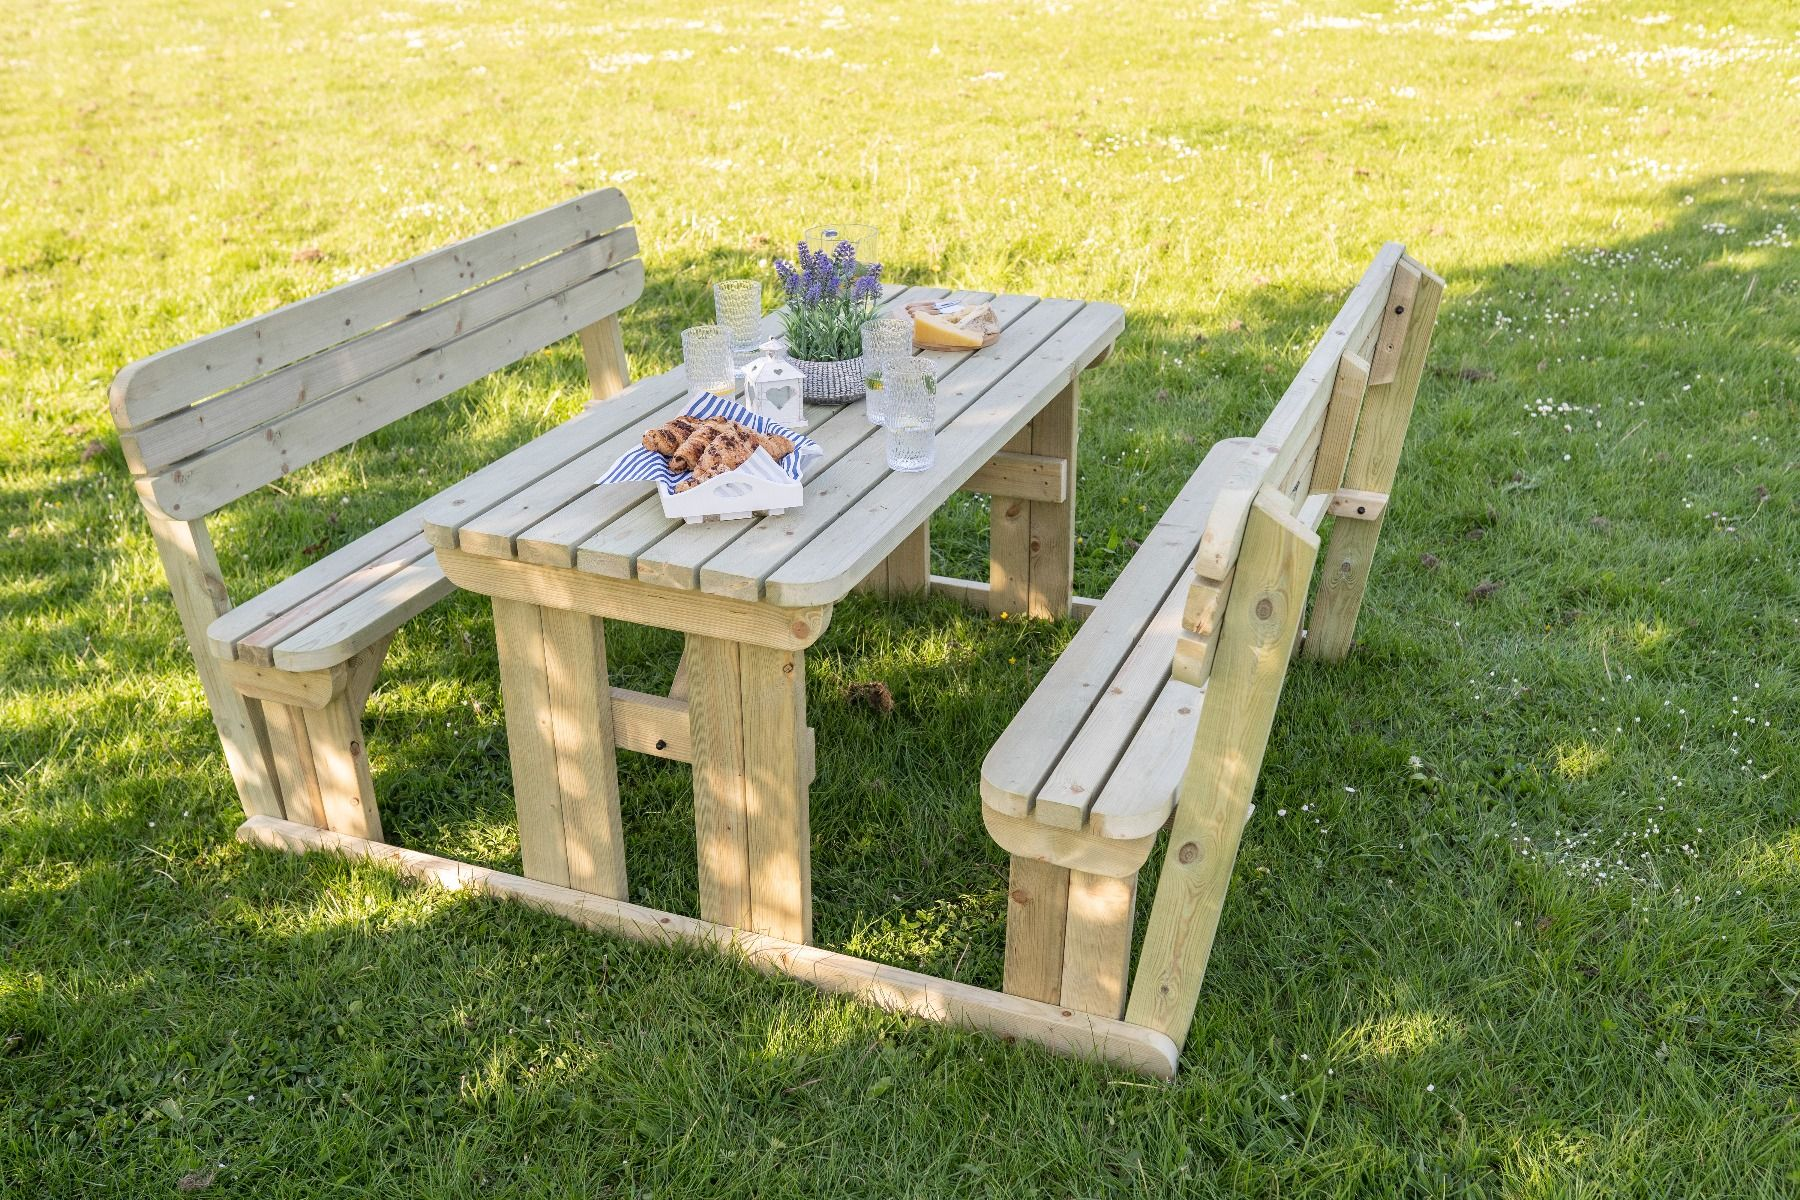 Picture of: Picnic Table And Bench Set Wooden Garden Furniture With Back Rest Alders Round Ebay